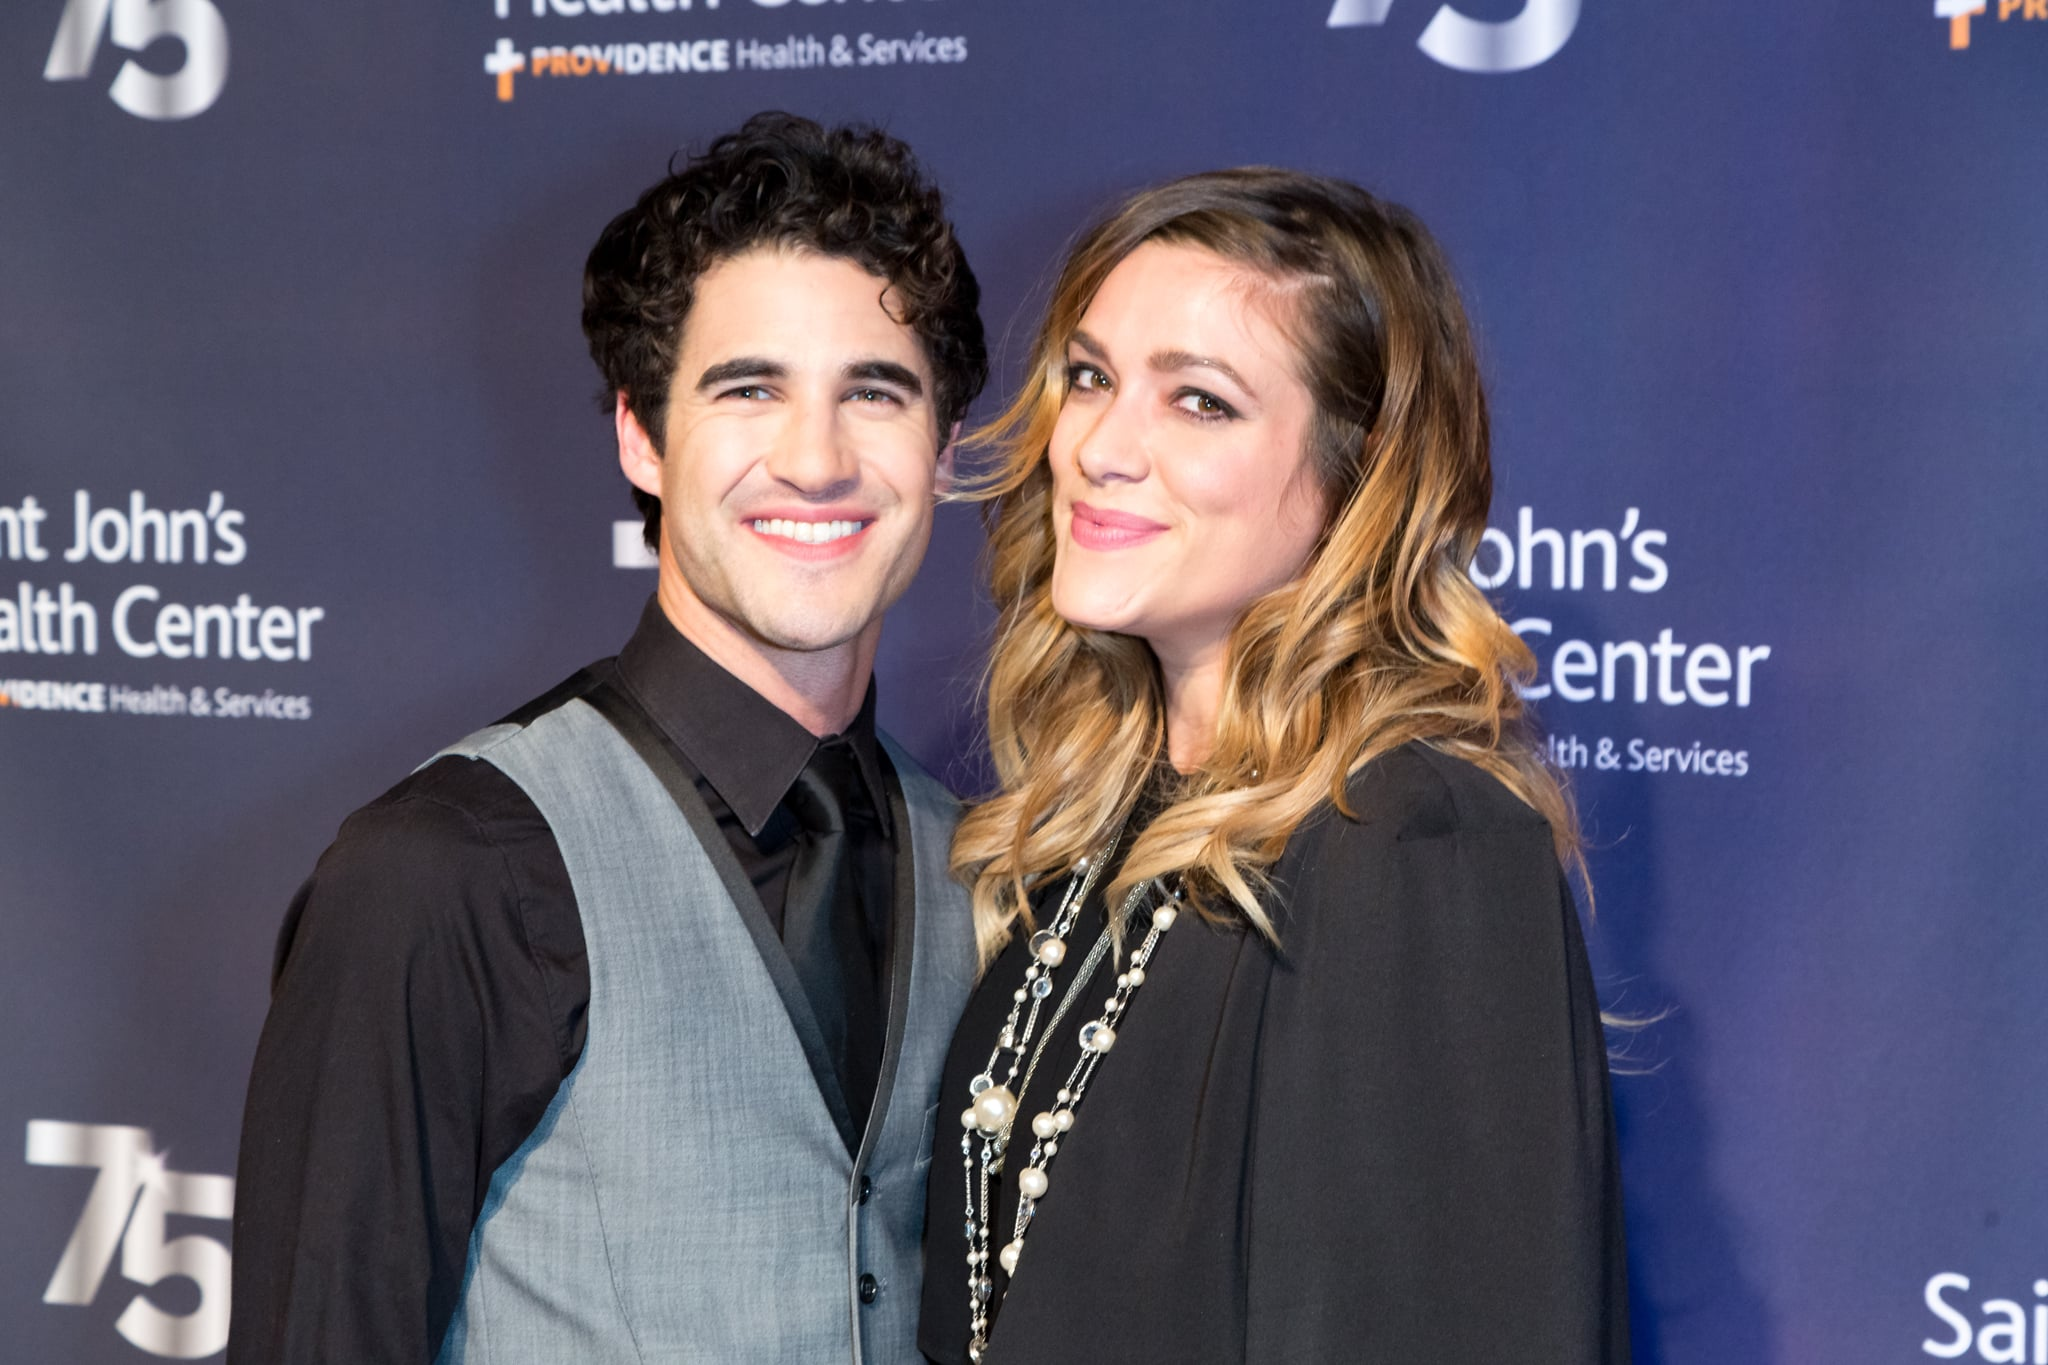 CULVER CITY, CA - OCTOBER 21:  Singer-songwriter Darren Criss and Director Mia Swier attend the Saint John's Health Centre Foundation's 75th Anniversary Gala Celebration at 3LABS on October 21, 2017 in Culver City, California.  (Photo by Greg Doherty/Getty Images,)